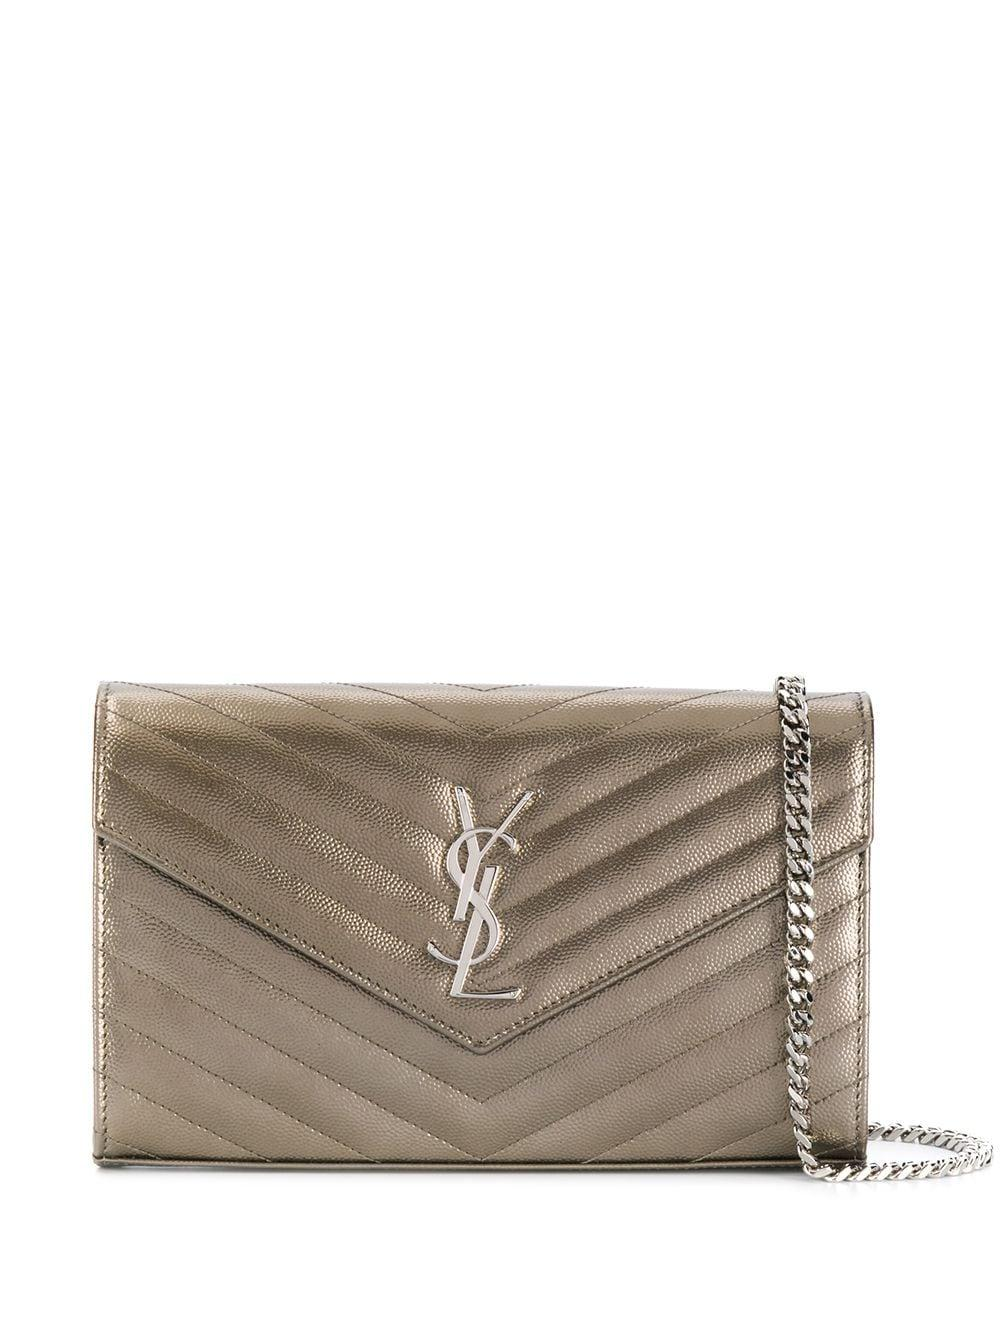 Leather Wallet On Chain Item # 37783803X22